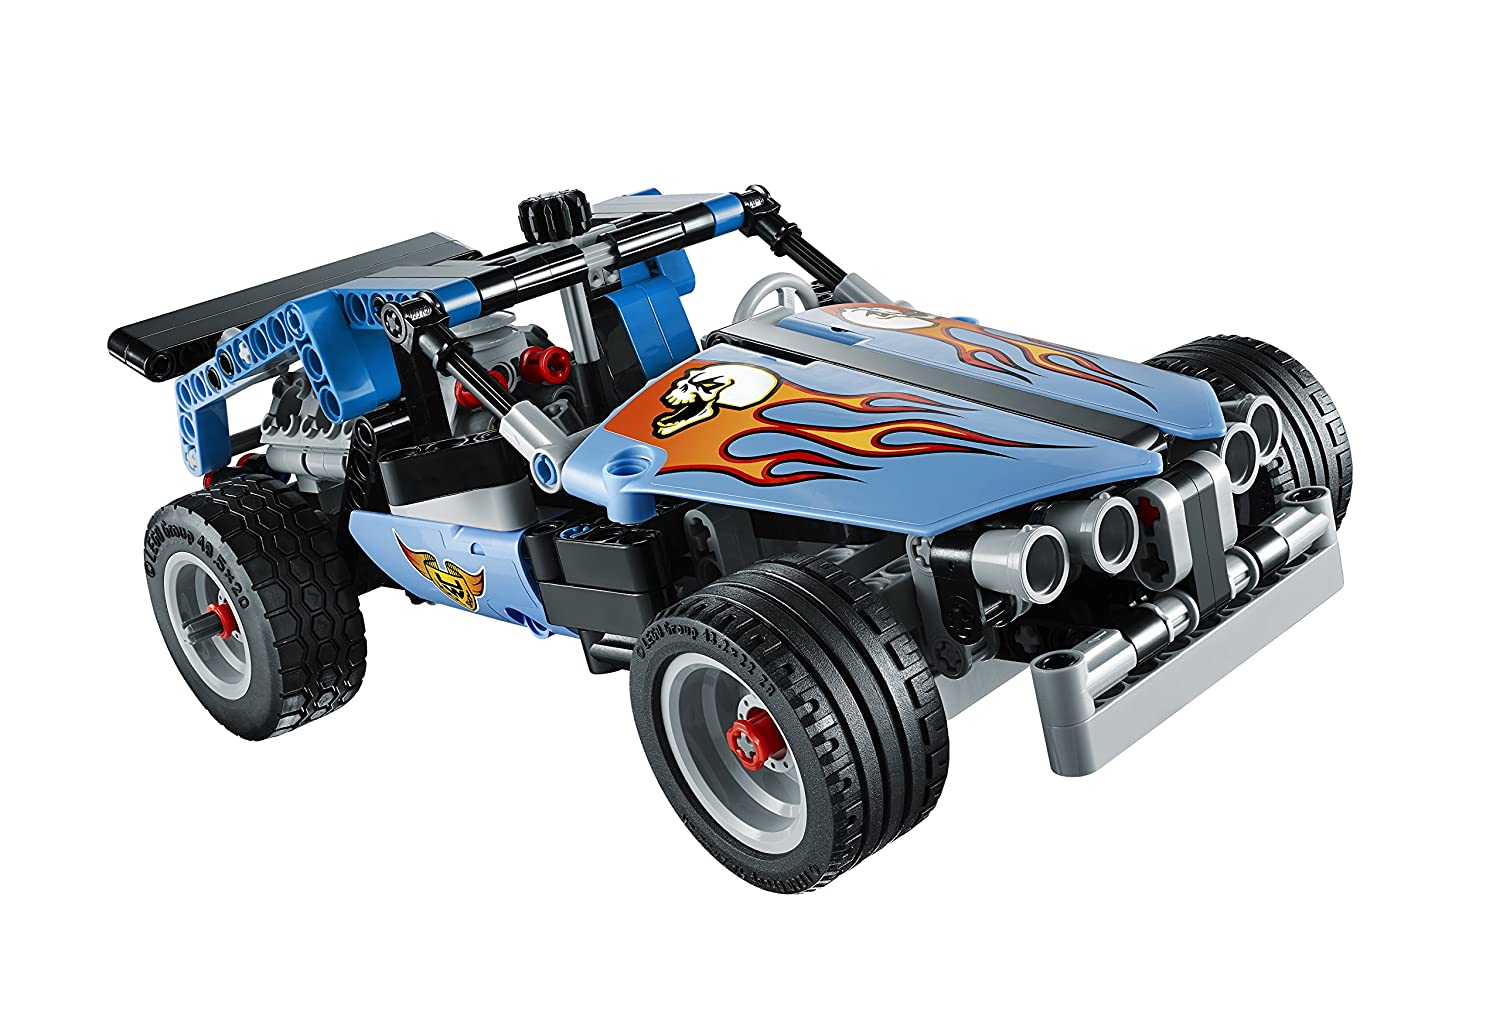 lego technic 42022 hot rod model kit new free shipping. Black Bedroom Furniture Sets. Home Design Ideas